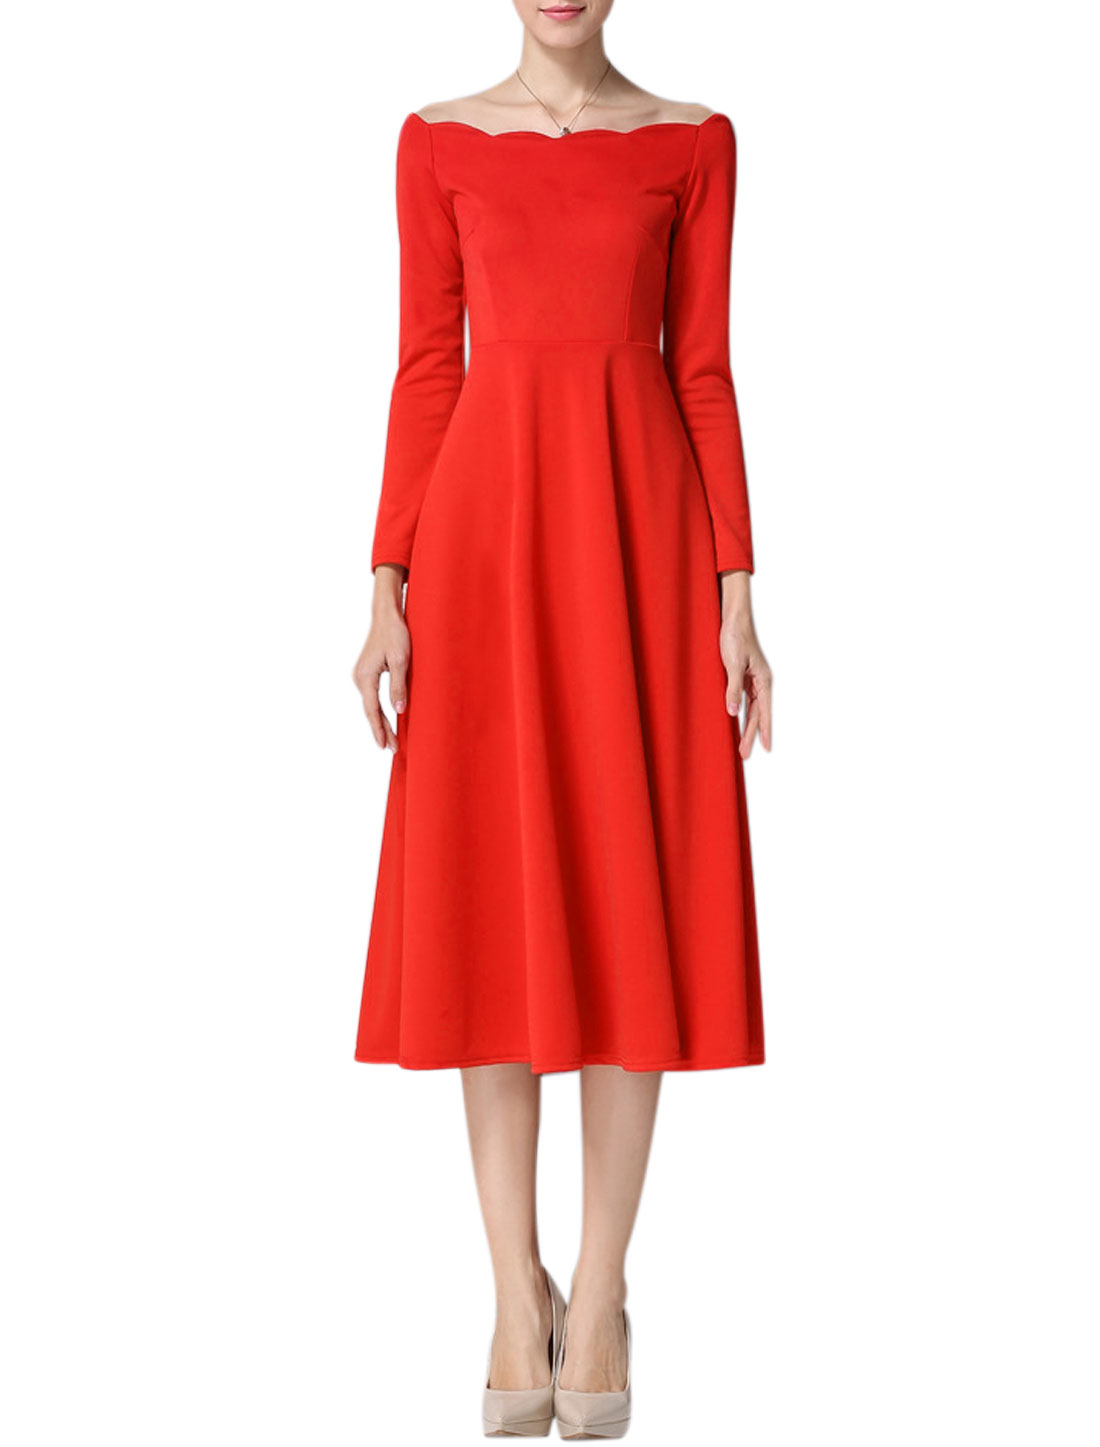 Woman Scalloped Boat Neck Bracelet Sleeves Midi Dress Red M